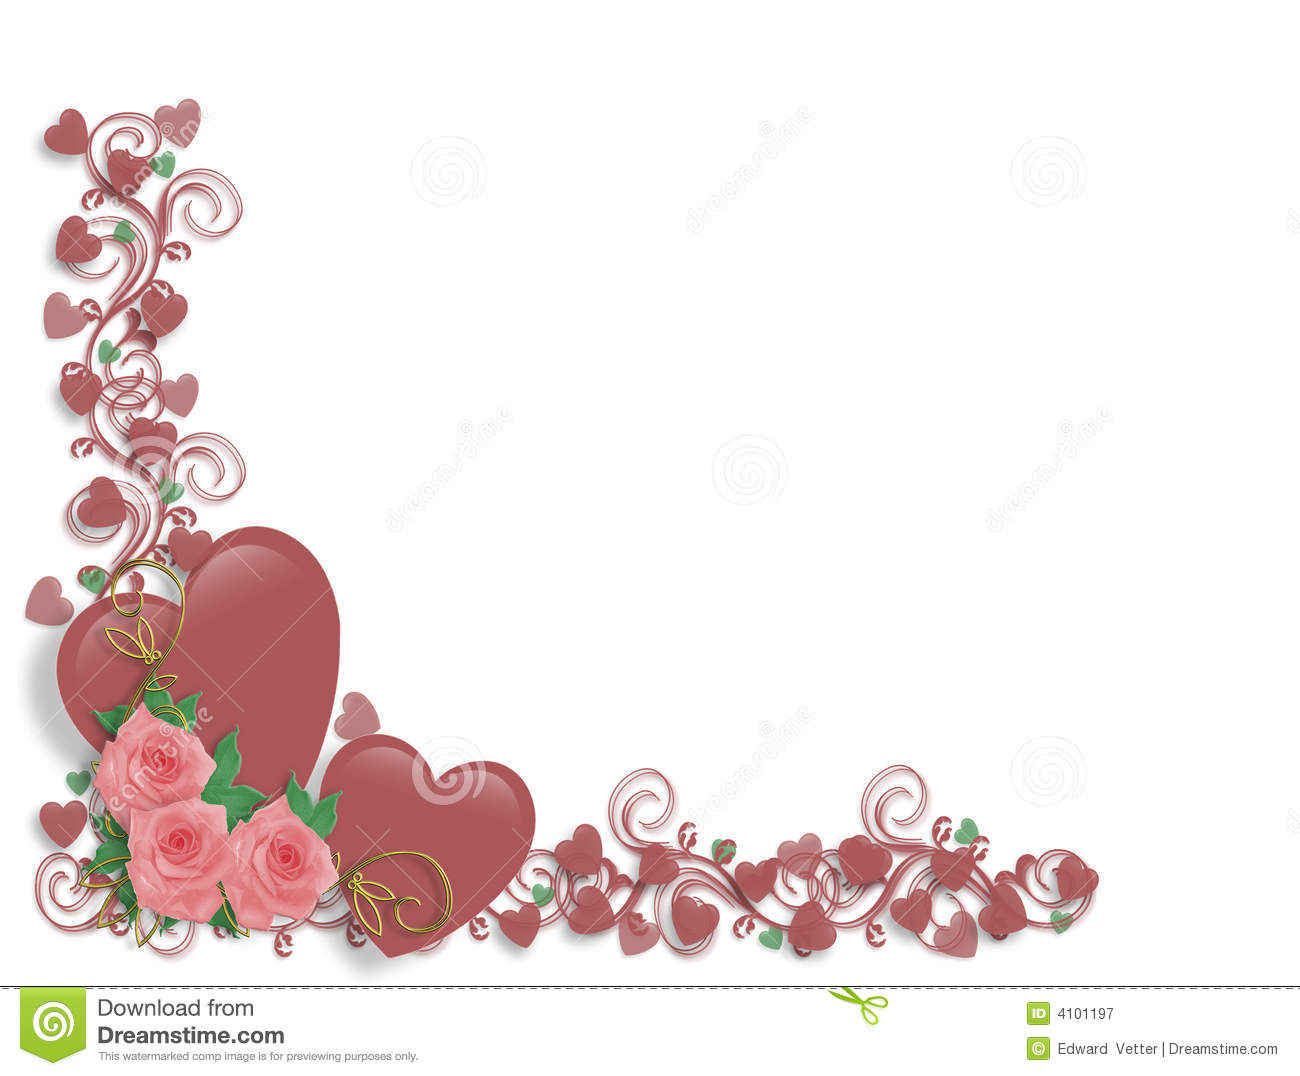 Valentine Border Pink Hearts and Roses